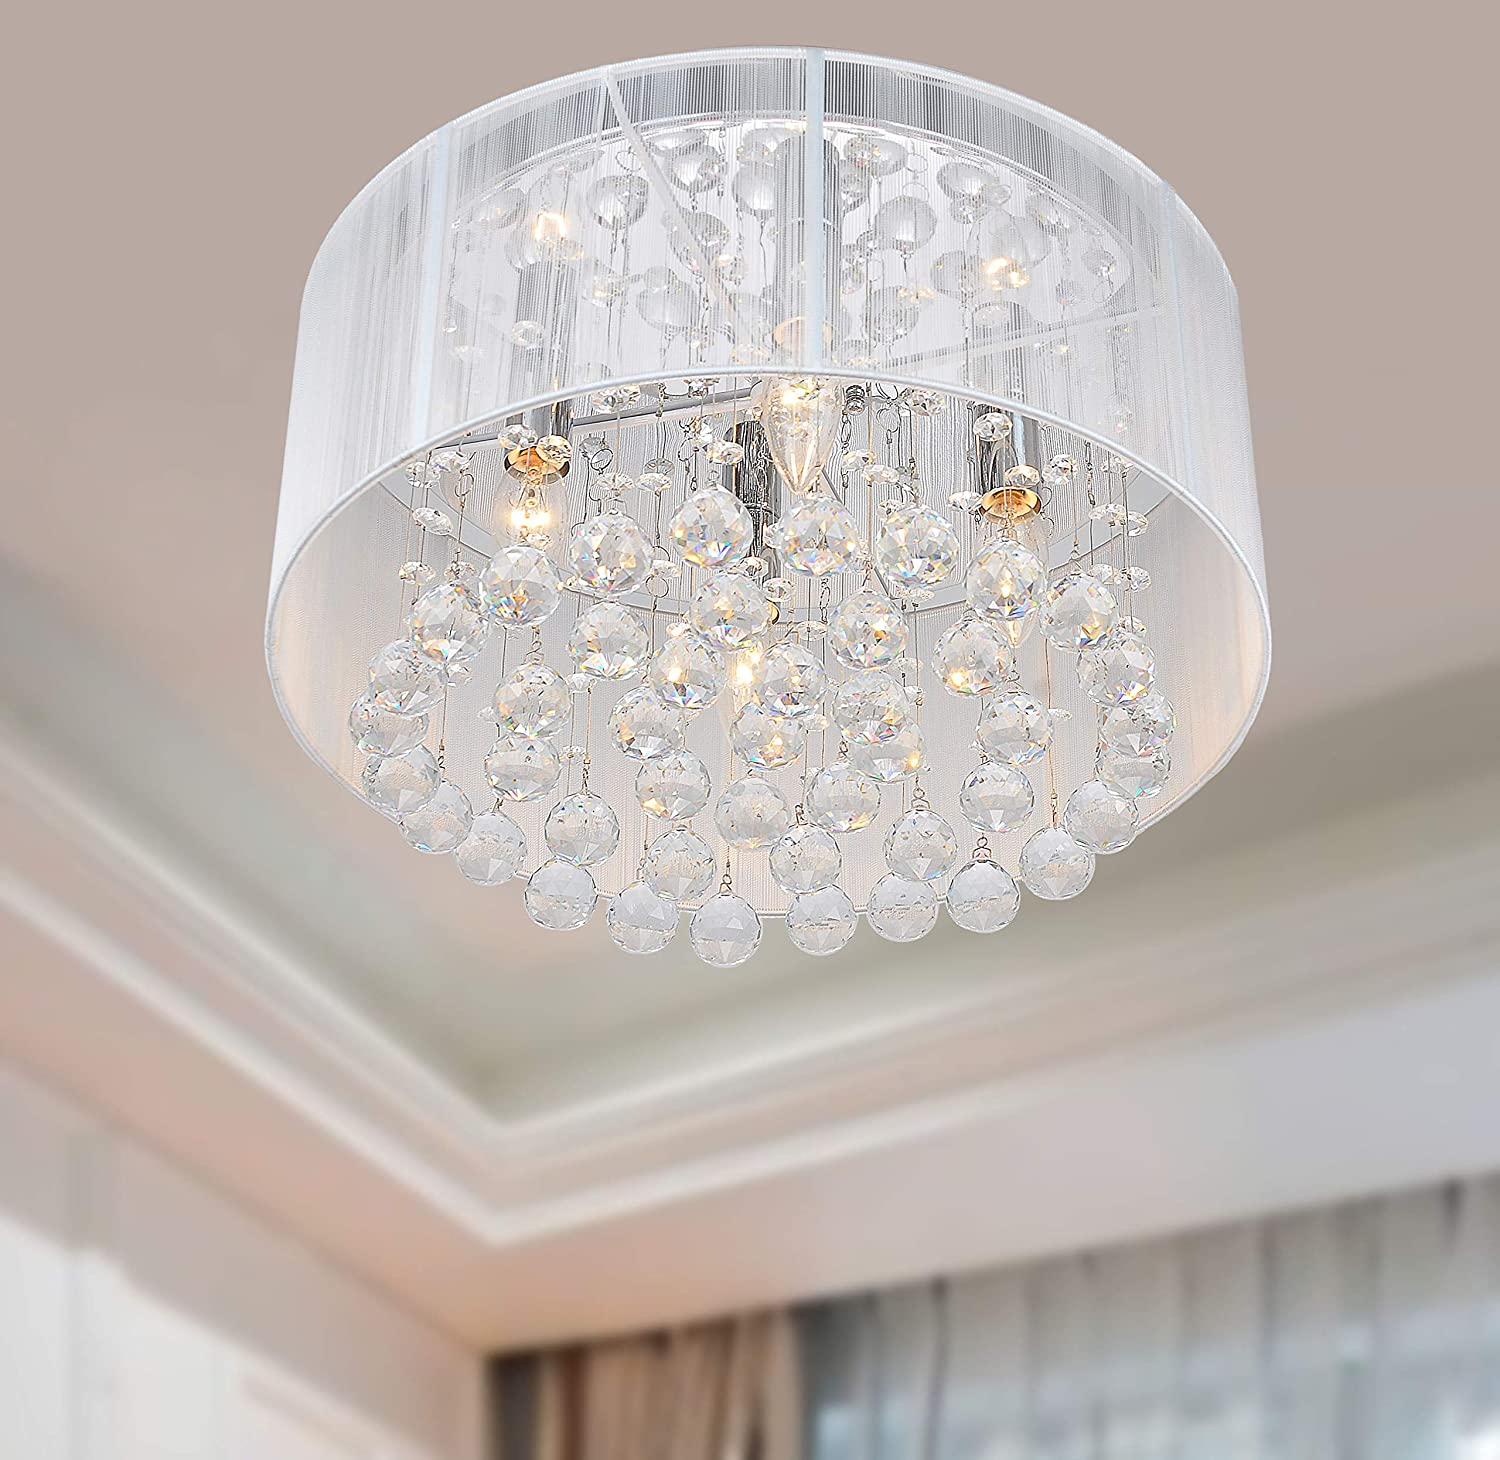 Flushmount 4 Light Chrome And White Crystal Chandelier For Chandeler Com